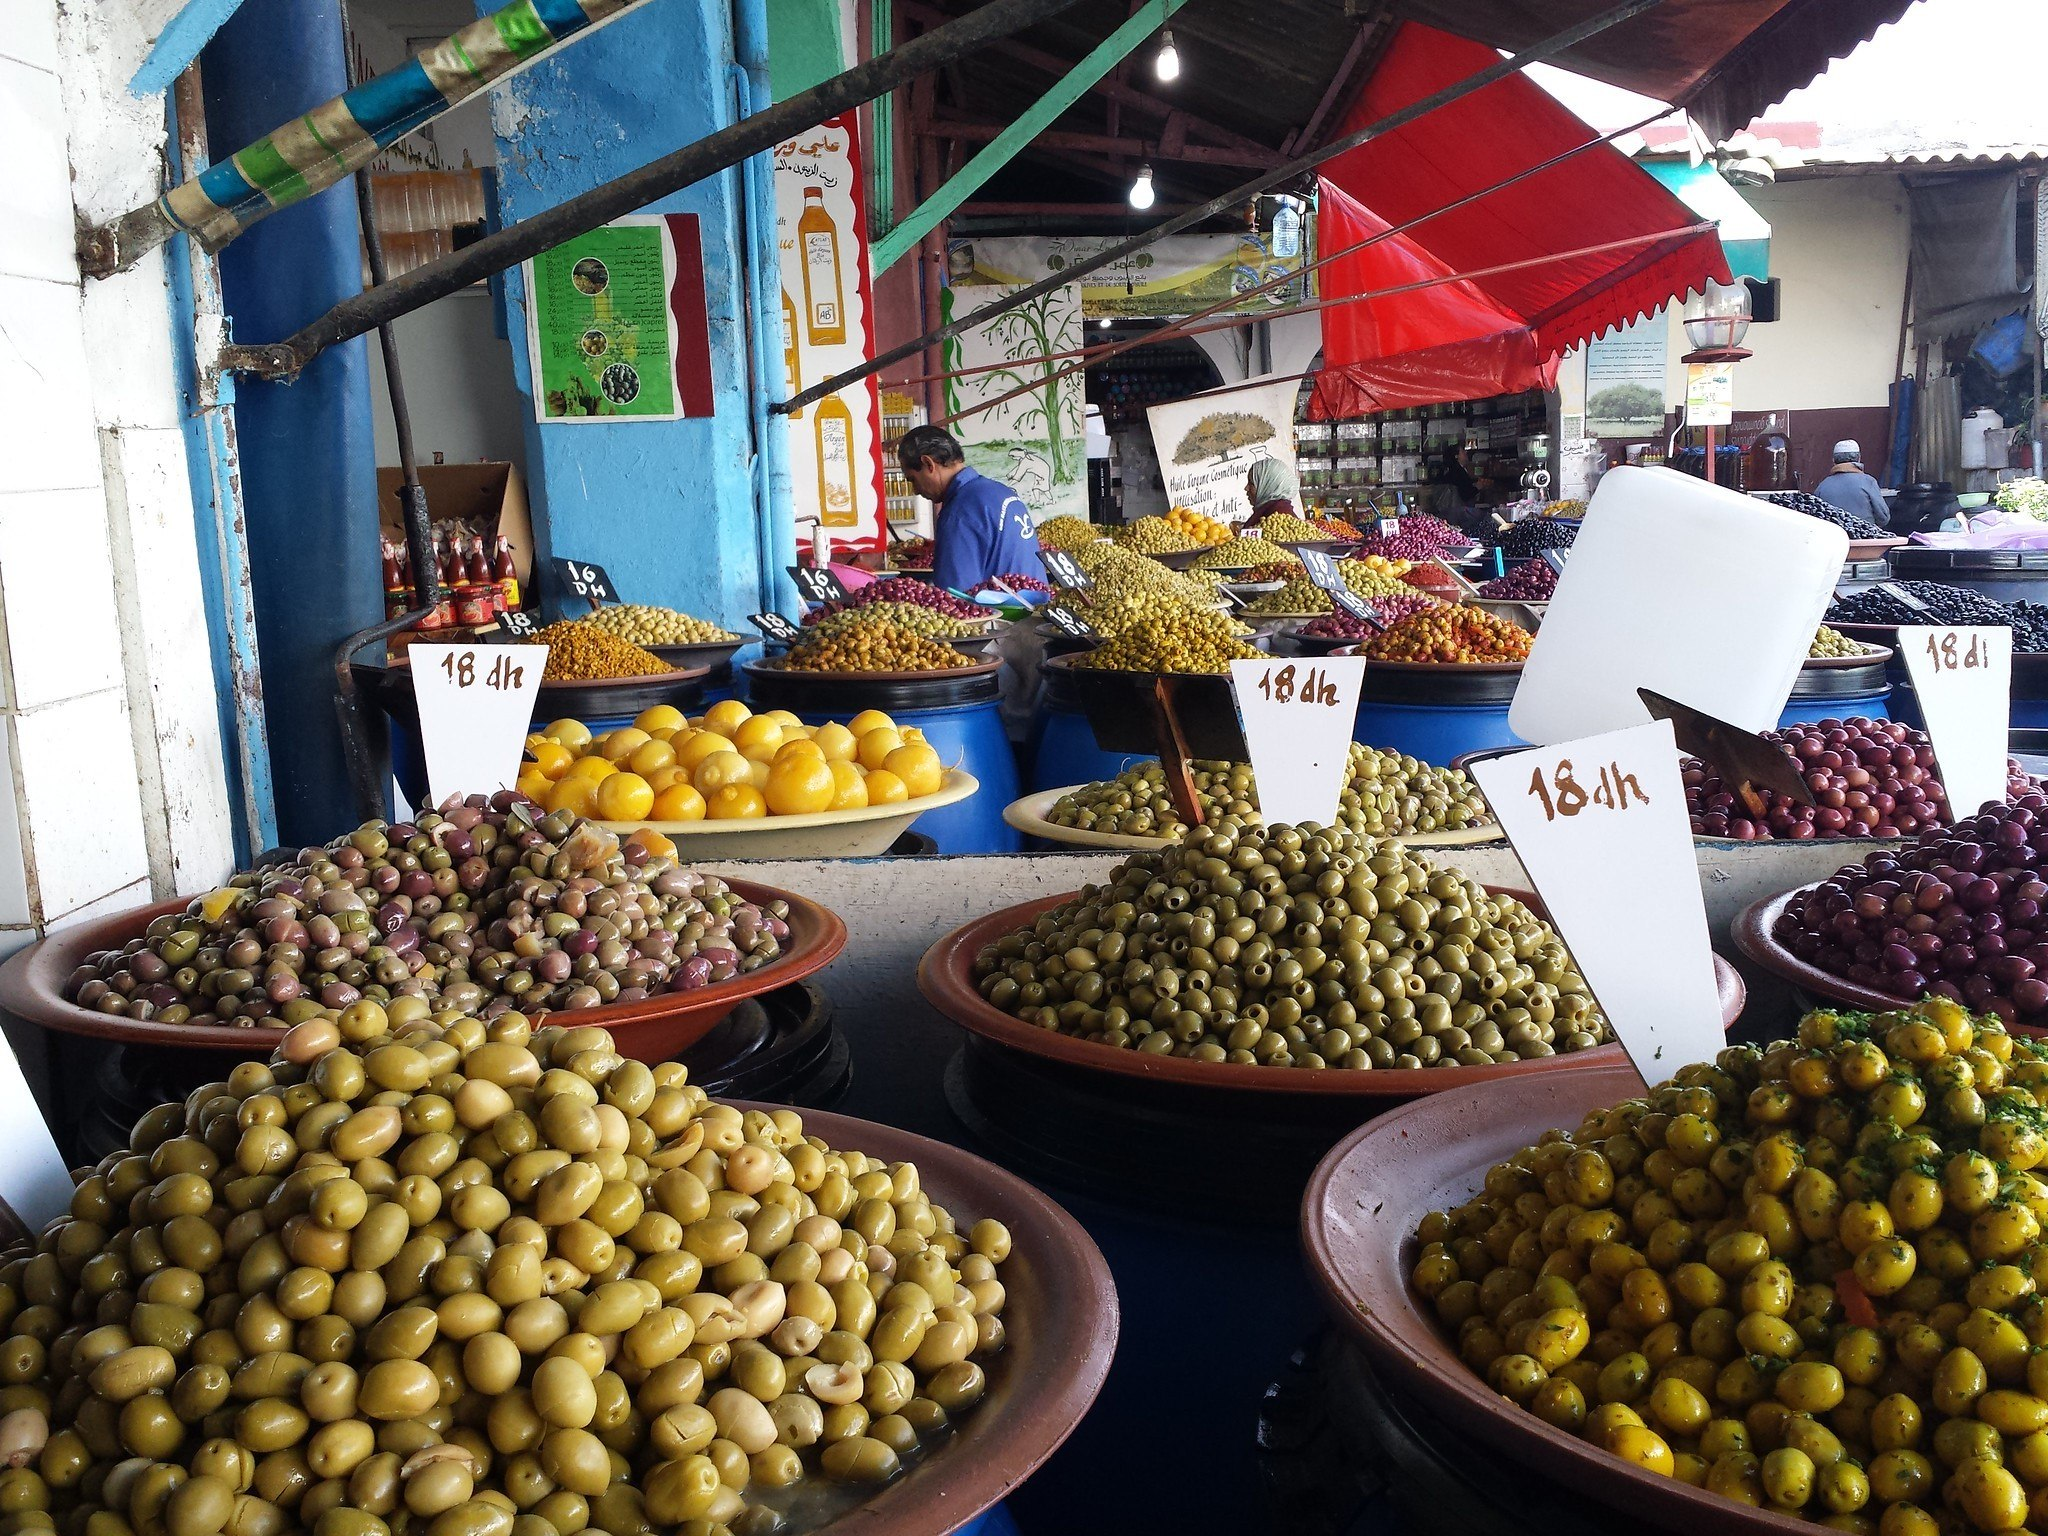 Casablanca Market by hewy on Flickr